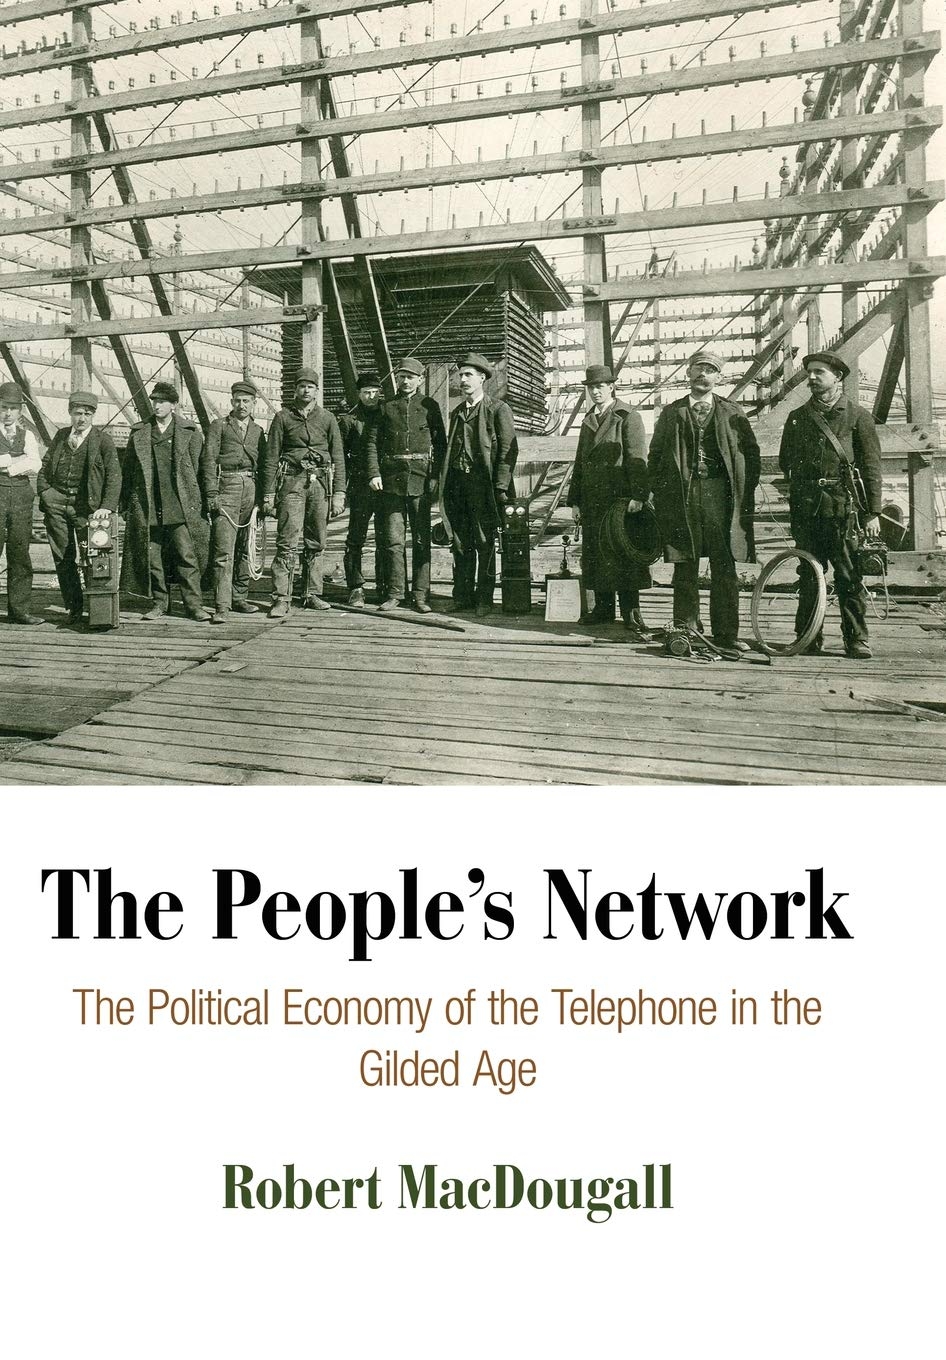 The People's Network: The Political Economy of the Telephone in the Gilded Age (American Business, Politics, and Society) PDF